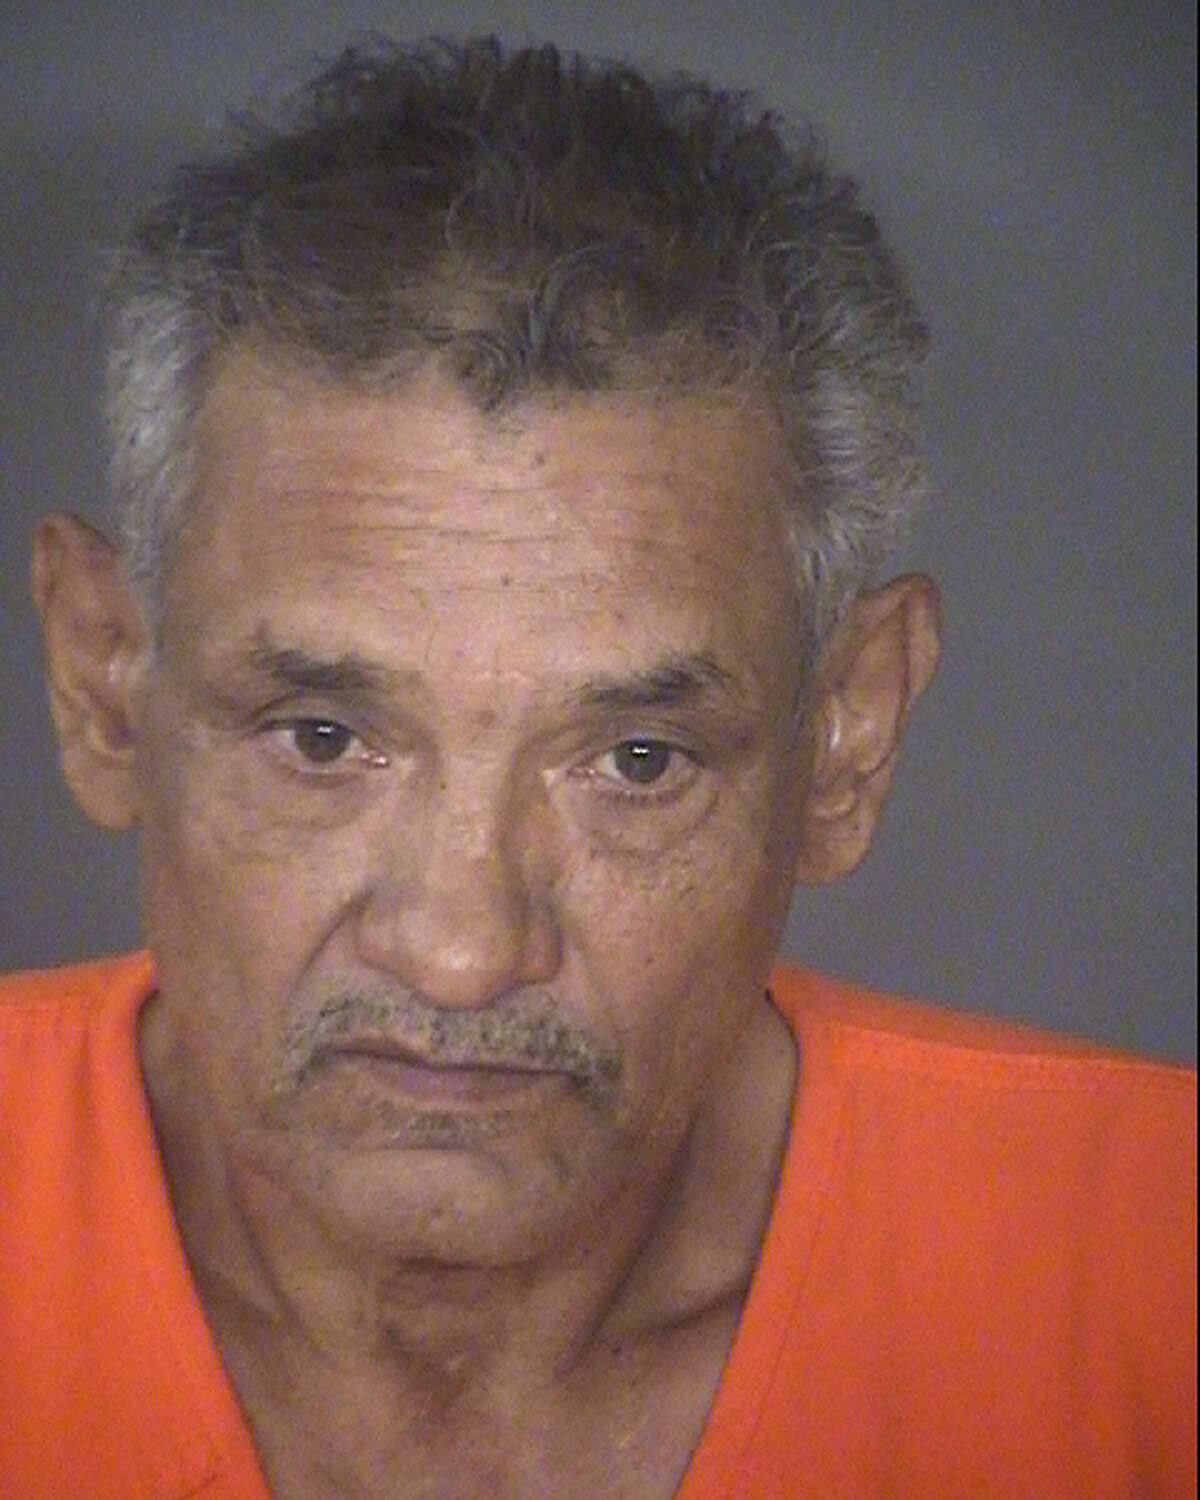 Hector Villagran Rodriguez was charged with driving while intoxicated on Aug. 3, 2018.